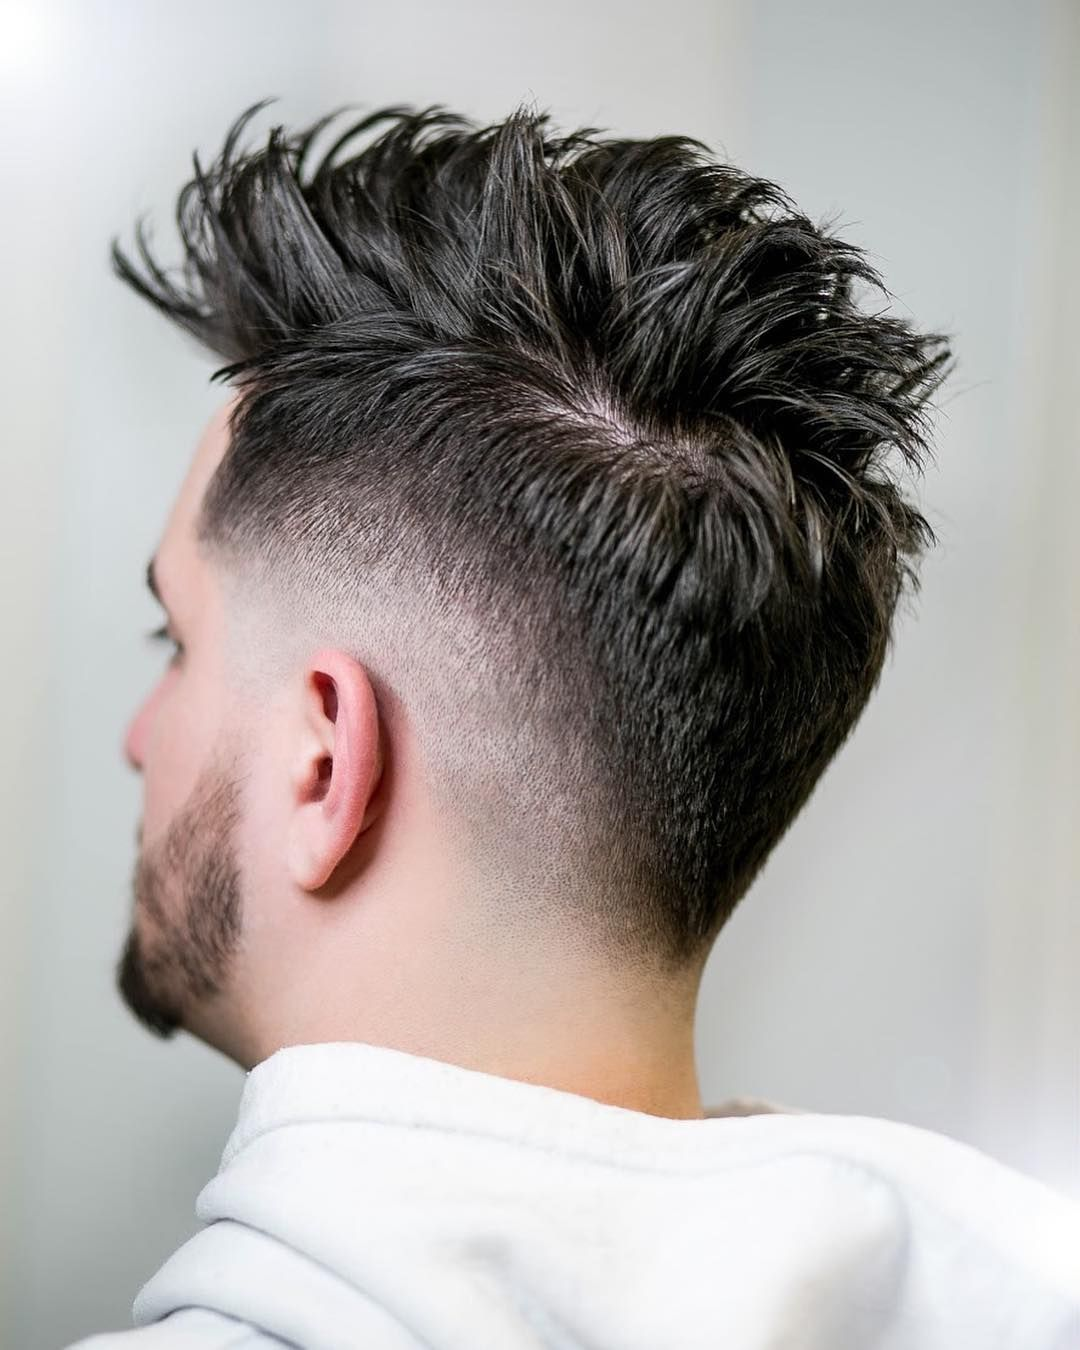 V Shaped Haircut Men's : shaped, haircut, men's, Men's, Hairstyles